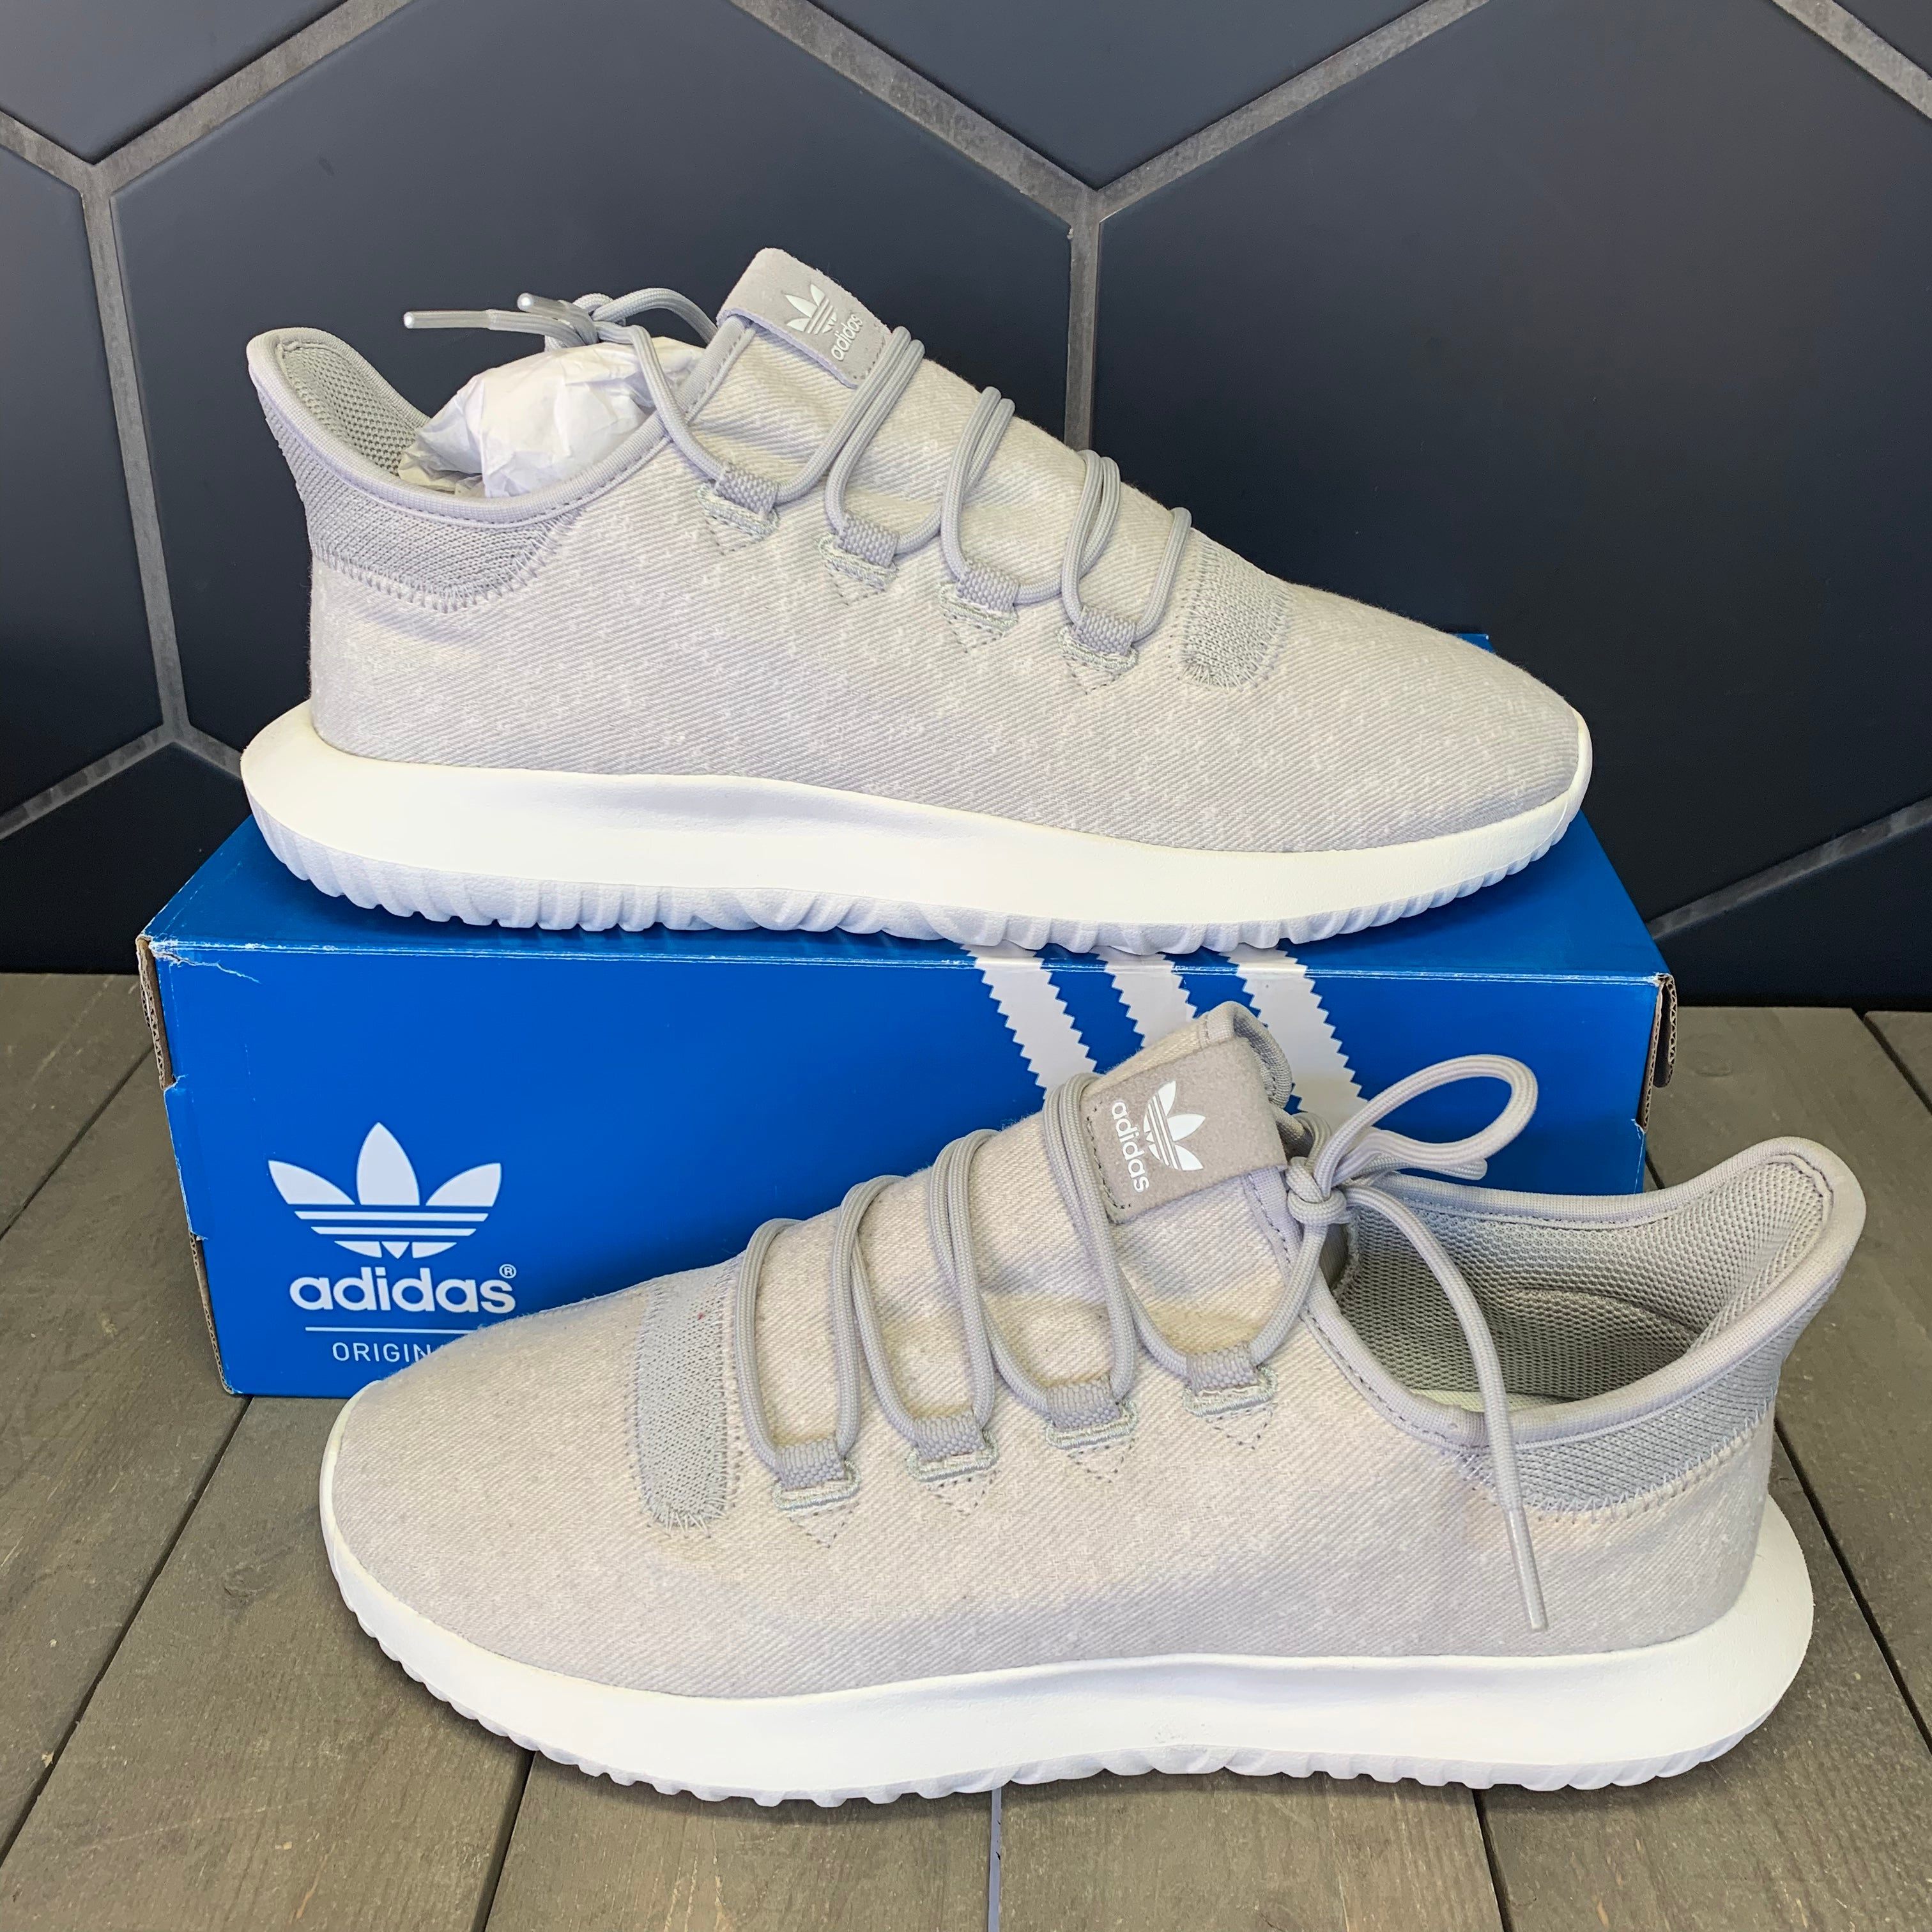 New W/ Box! Adidas Tubular Shadow Grey White Shoe (Multiple Sizes)